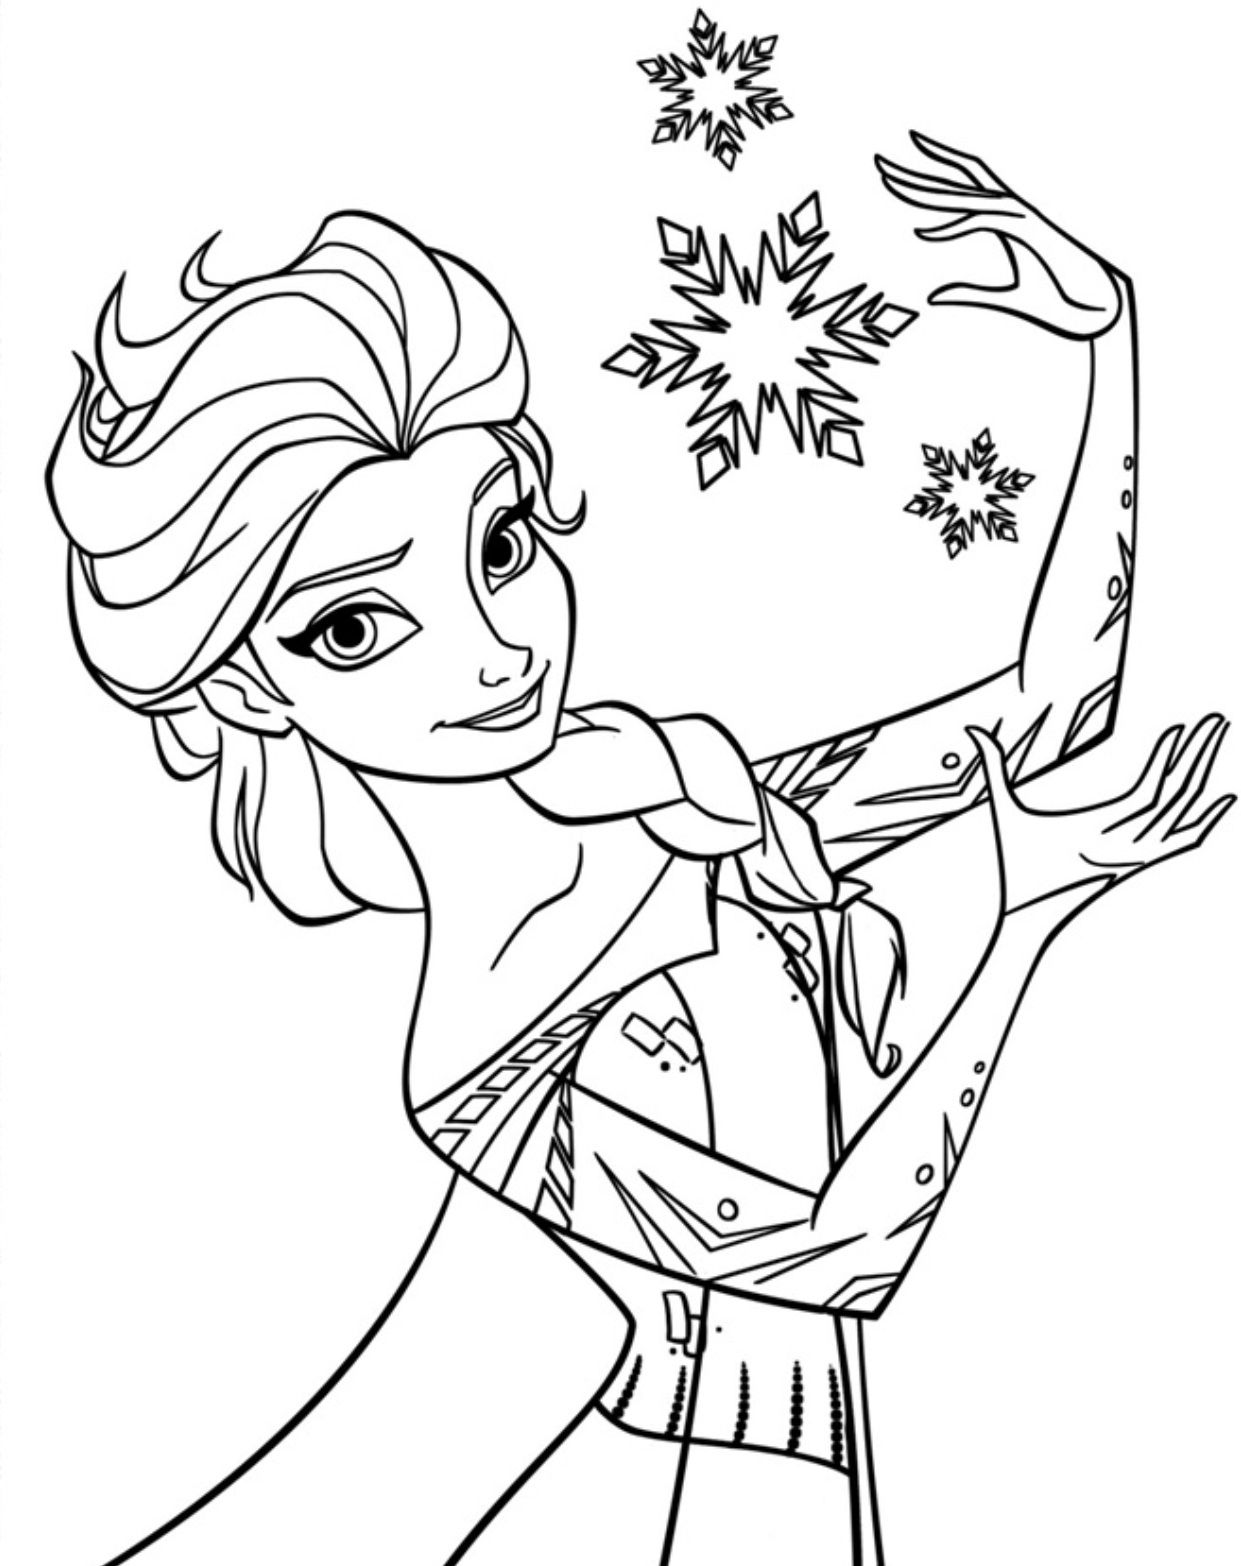 frozen callering pages download and print printable frozen